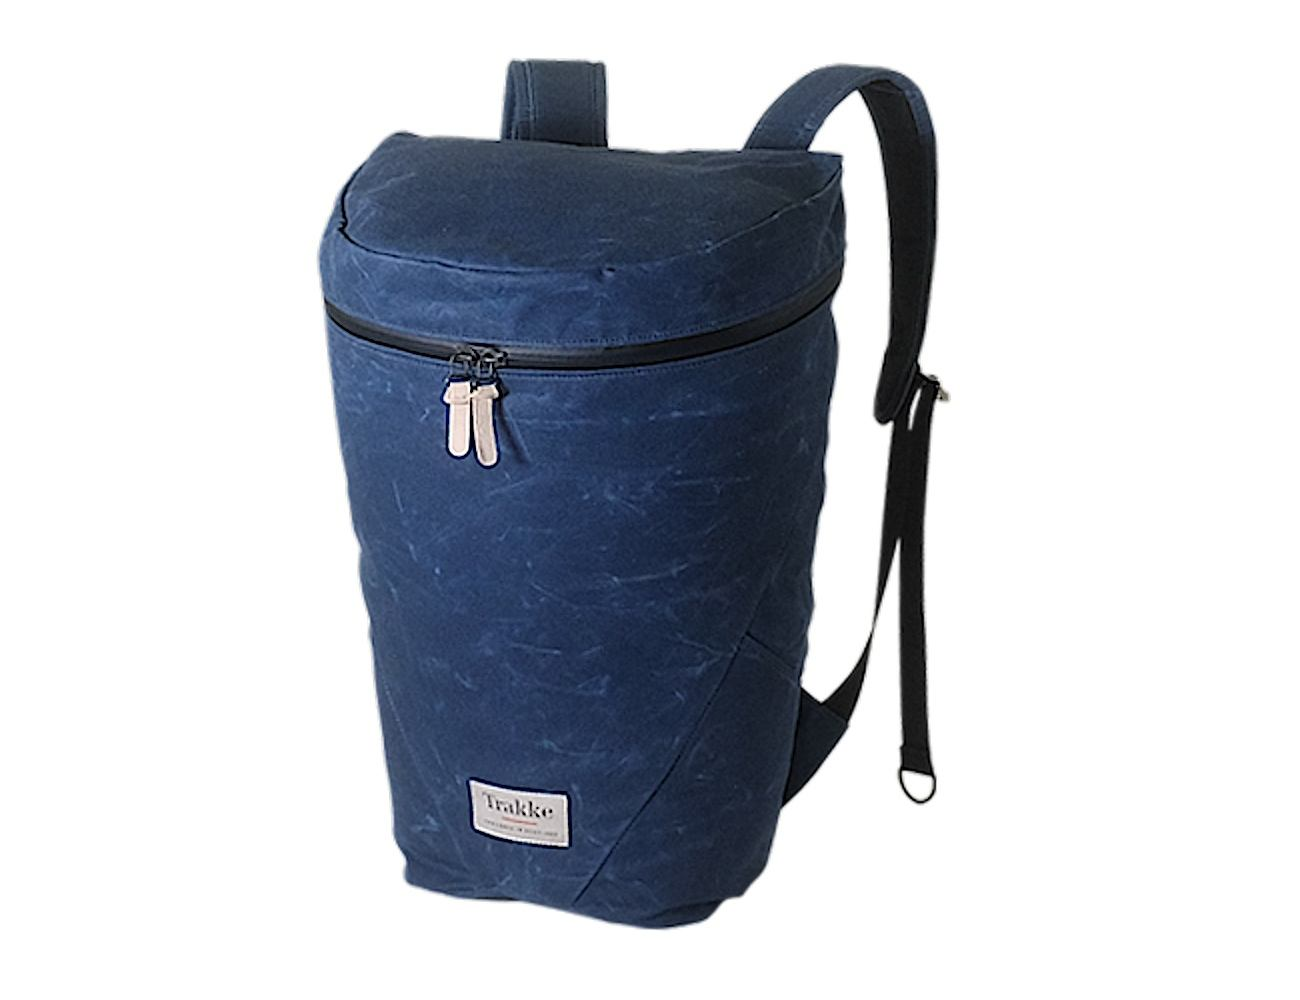 Trakke Lecht Adventure Backpack